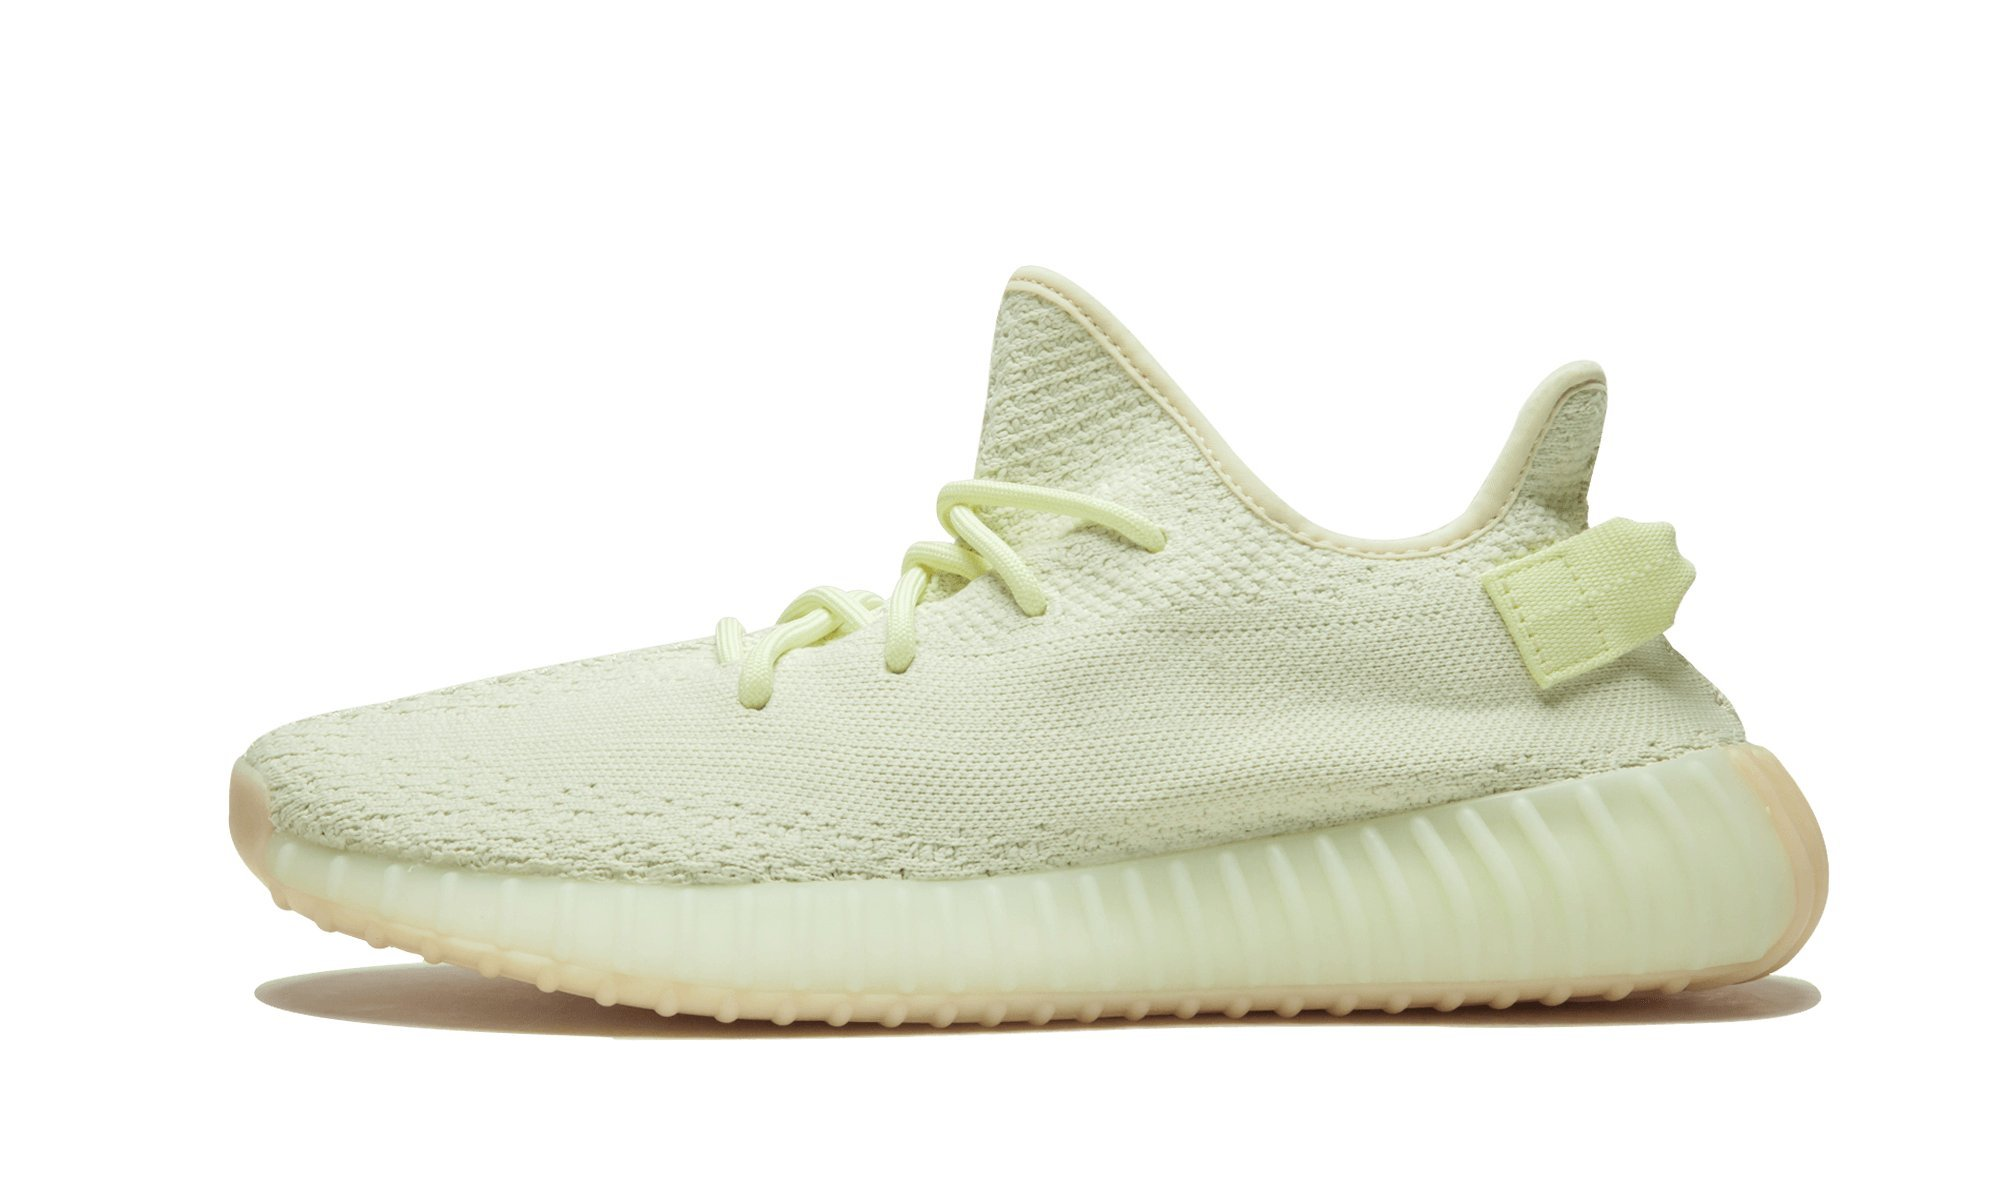 d93f1d8f85be6 Galleon - Adidas Yeezy Boost 350 V2 Butter F36980 Style  F36980-BUTTER  BUTTER Size  11.5